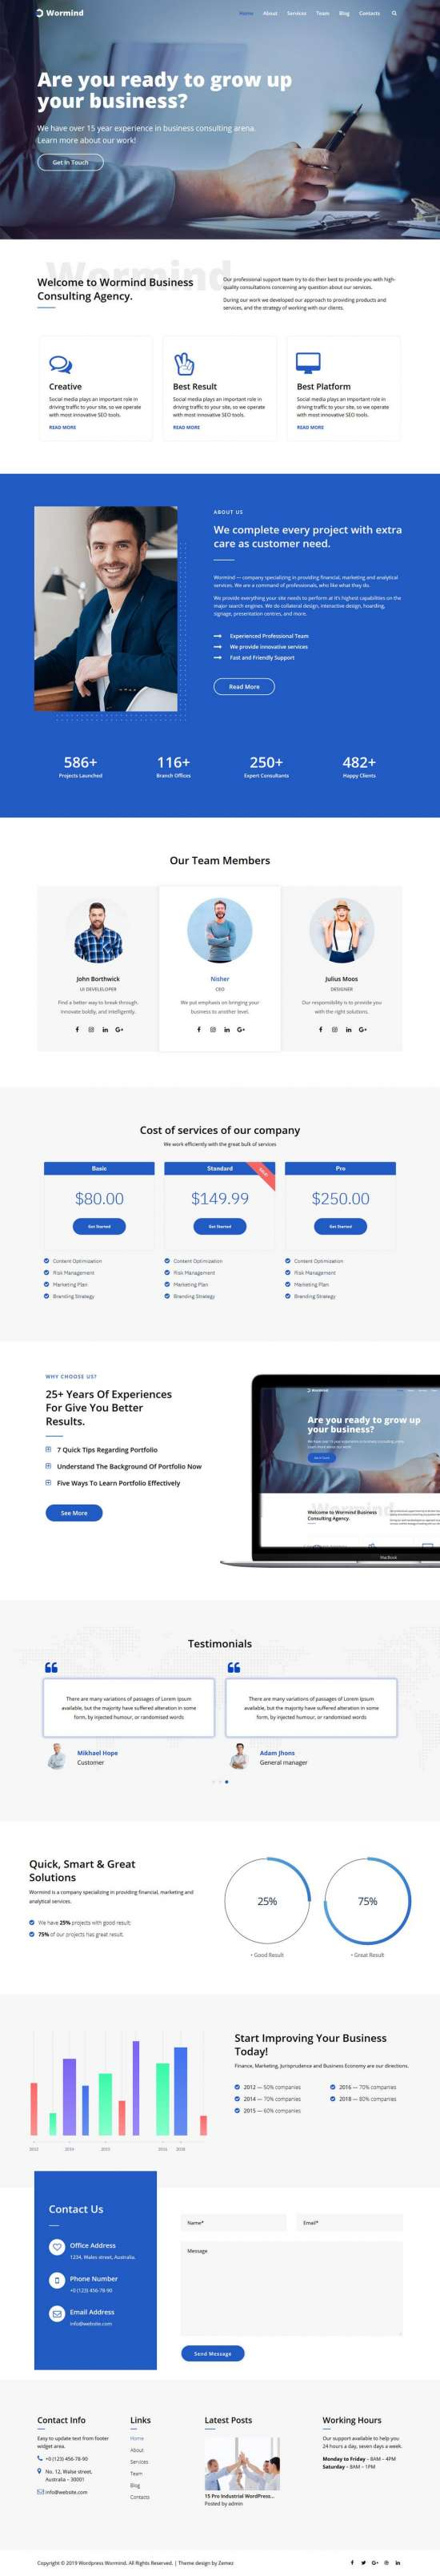 wormind wordpress theme 01 550x3217 - Worming WordPress Theme